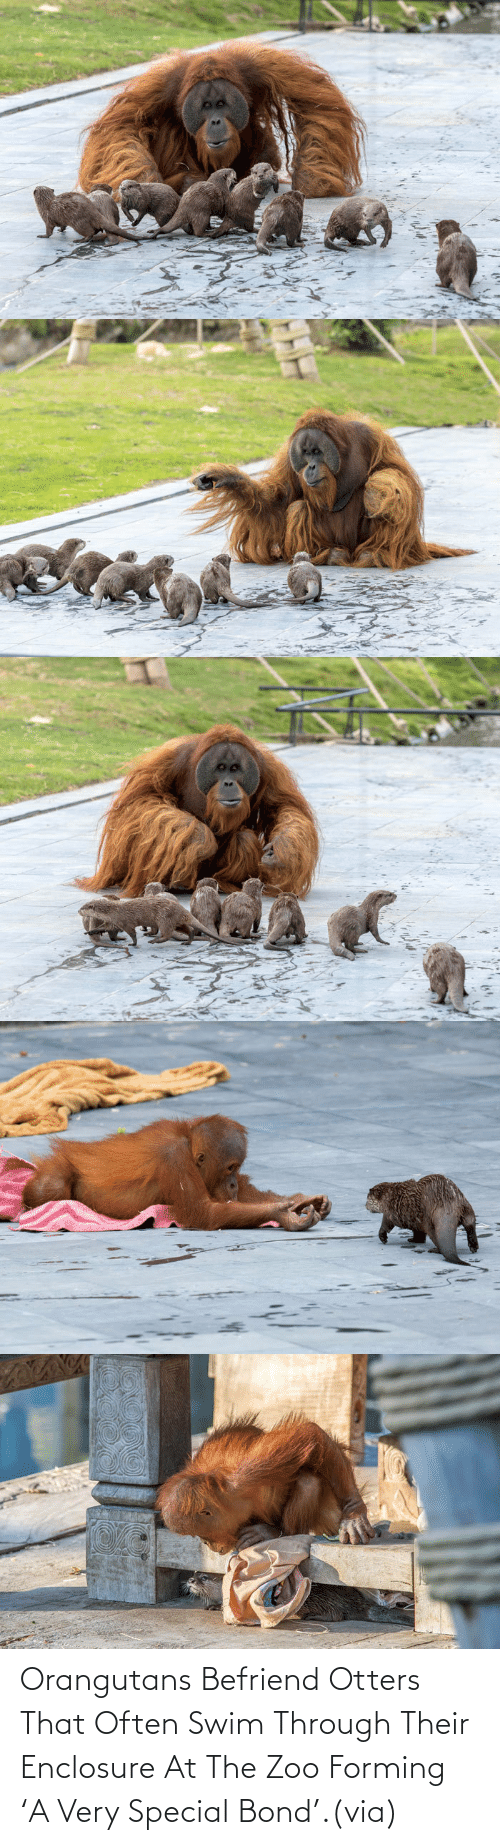 zoo: Orangutans Befriend Otters That Often Swim Through Their Enclosure At The Zoo Forming 'A Very Special Bond'.(via)